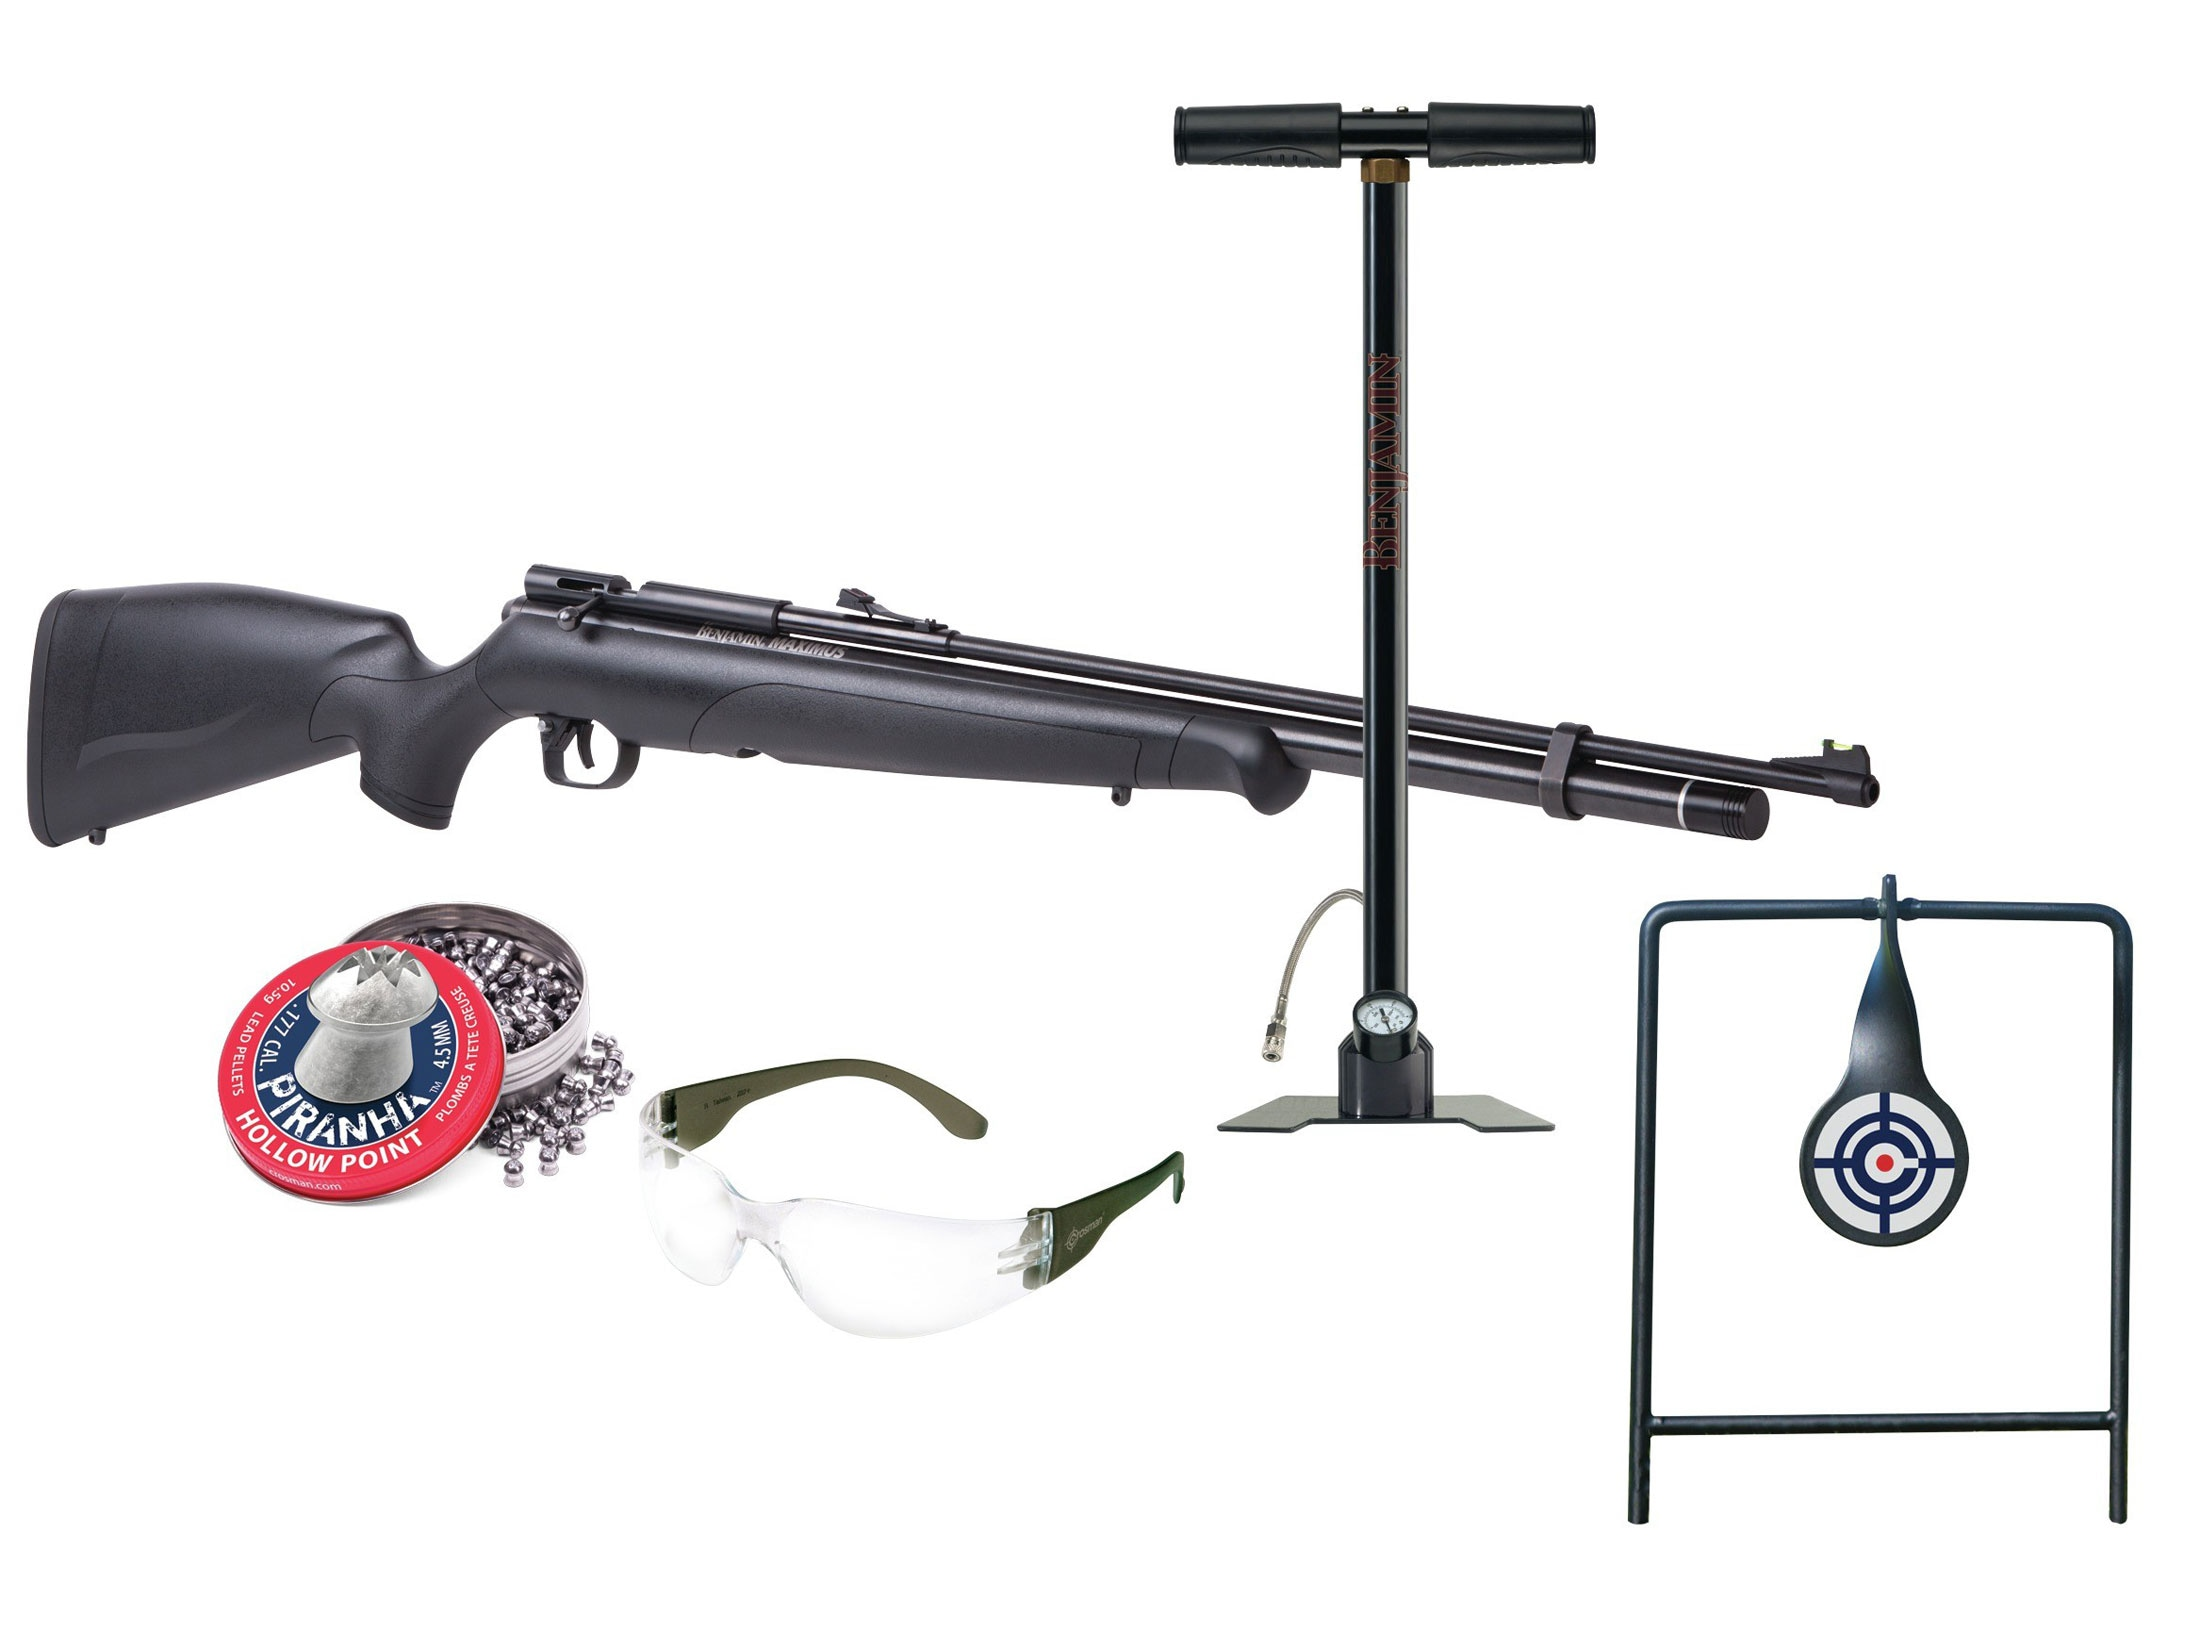 Benjamin Maximus PCP 22 Cal Pellet Air Rifle Combo